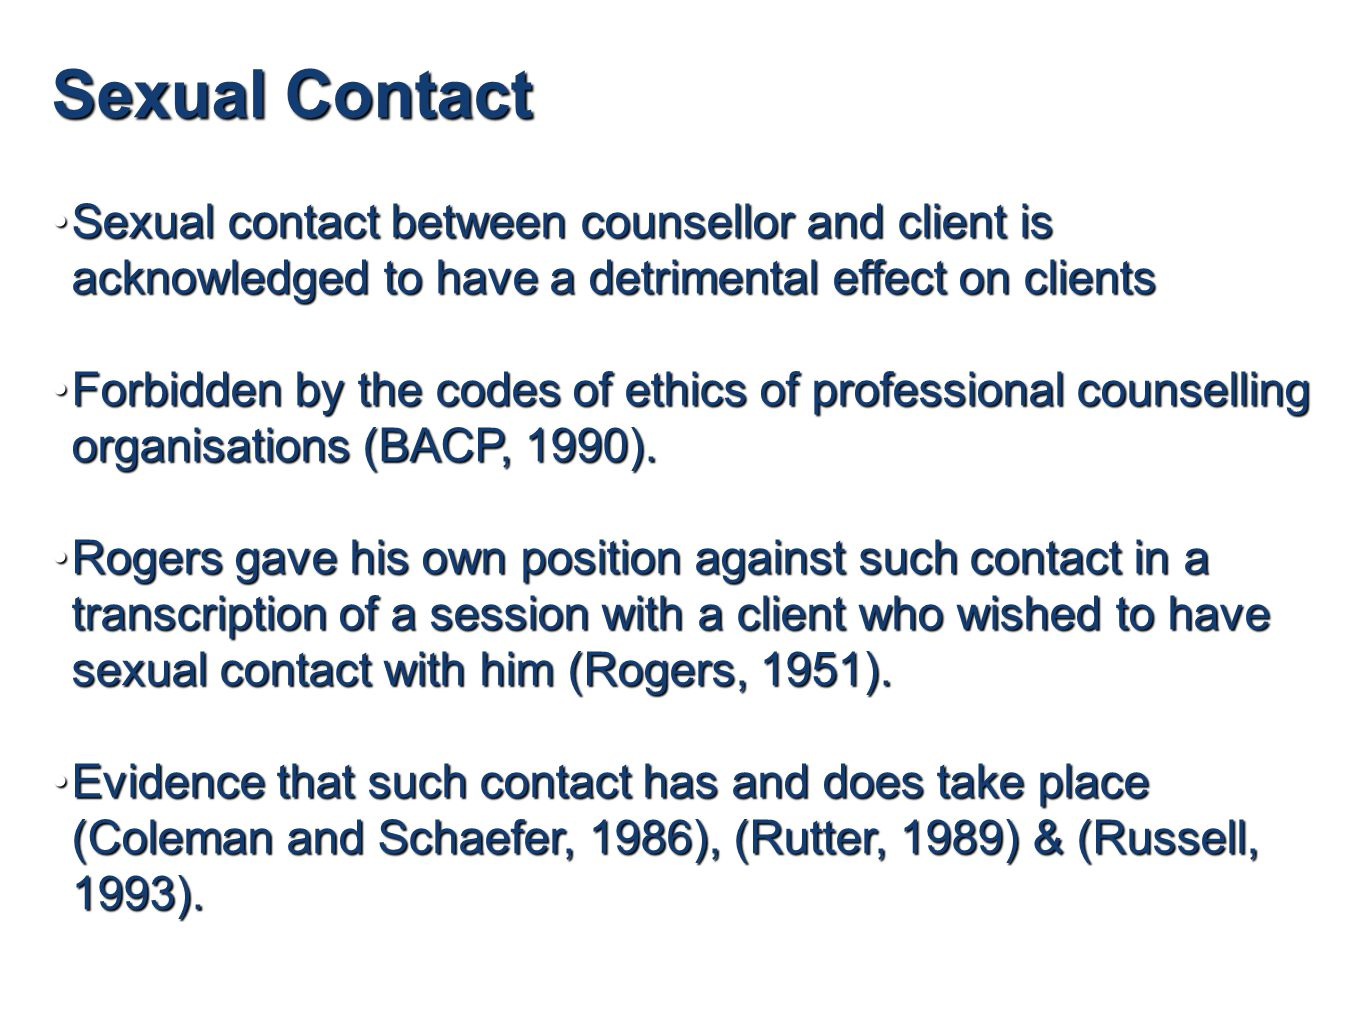 Sexual Contact Sexual contact between counsellor and client is acknowledged to have a detrimental effect on clientsSexual contact between counsellor and client is acknowledged to have a detrimental effect on clients Forbidden by the codes of ethics of professional counselling organisations (BACP, 1990).Forbidden by the codes of ethics of professional counselling organisations (BACP, 1990).